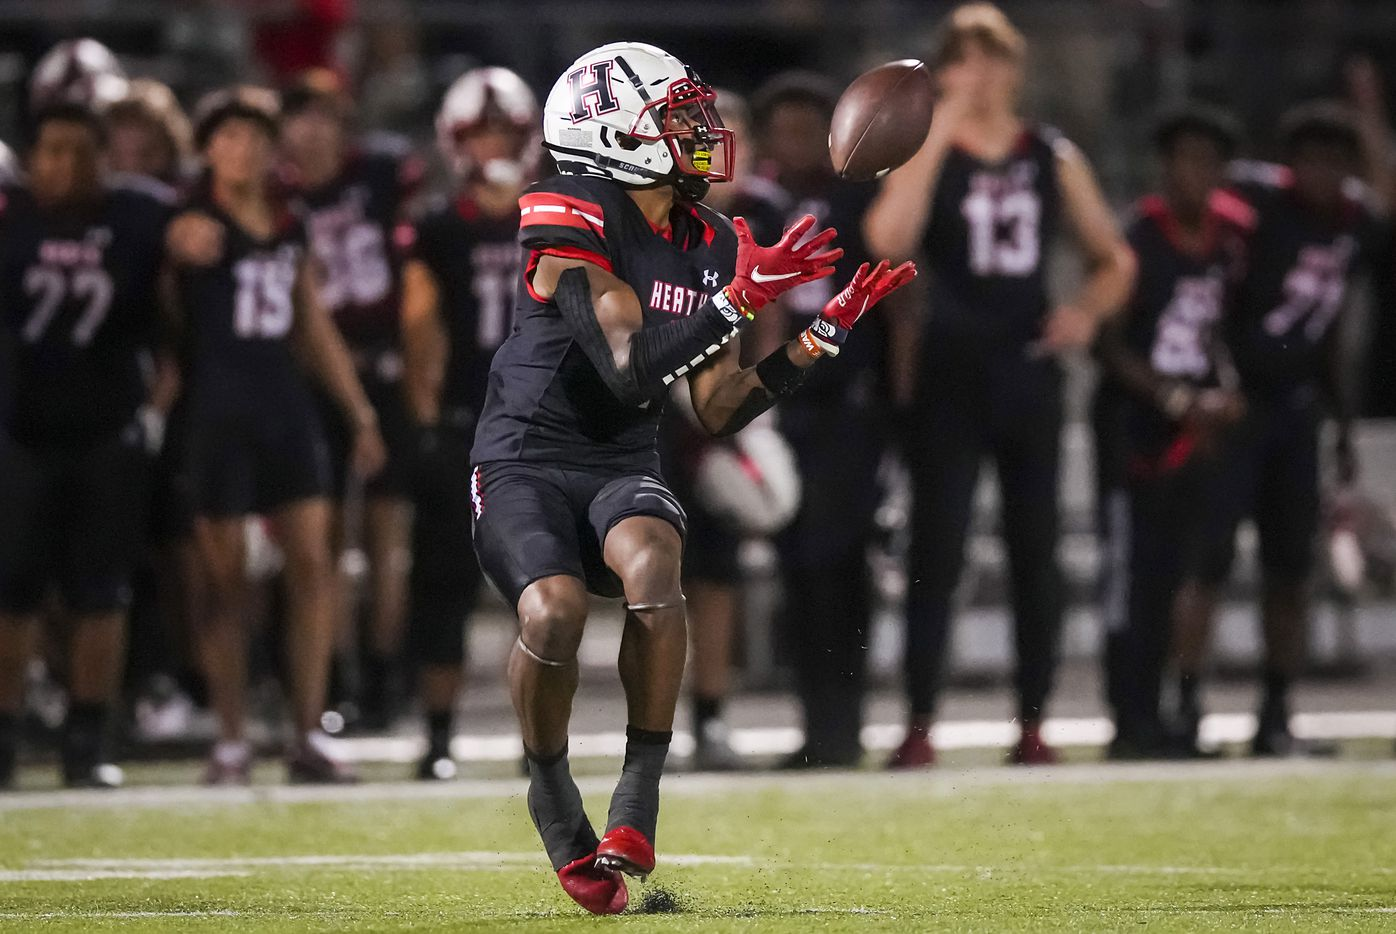 Rockwall-Heath wide receiver Jay Fair (1) hauls in a 69-yard touchdown reception as Rockwall defensive back Will Rkow (24) defends during the first half of a District 10-6A high school football game at Wilkerson-Sanders Stadium on Friday, Sept. 24, 2021, in Rockwall.